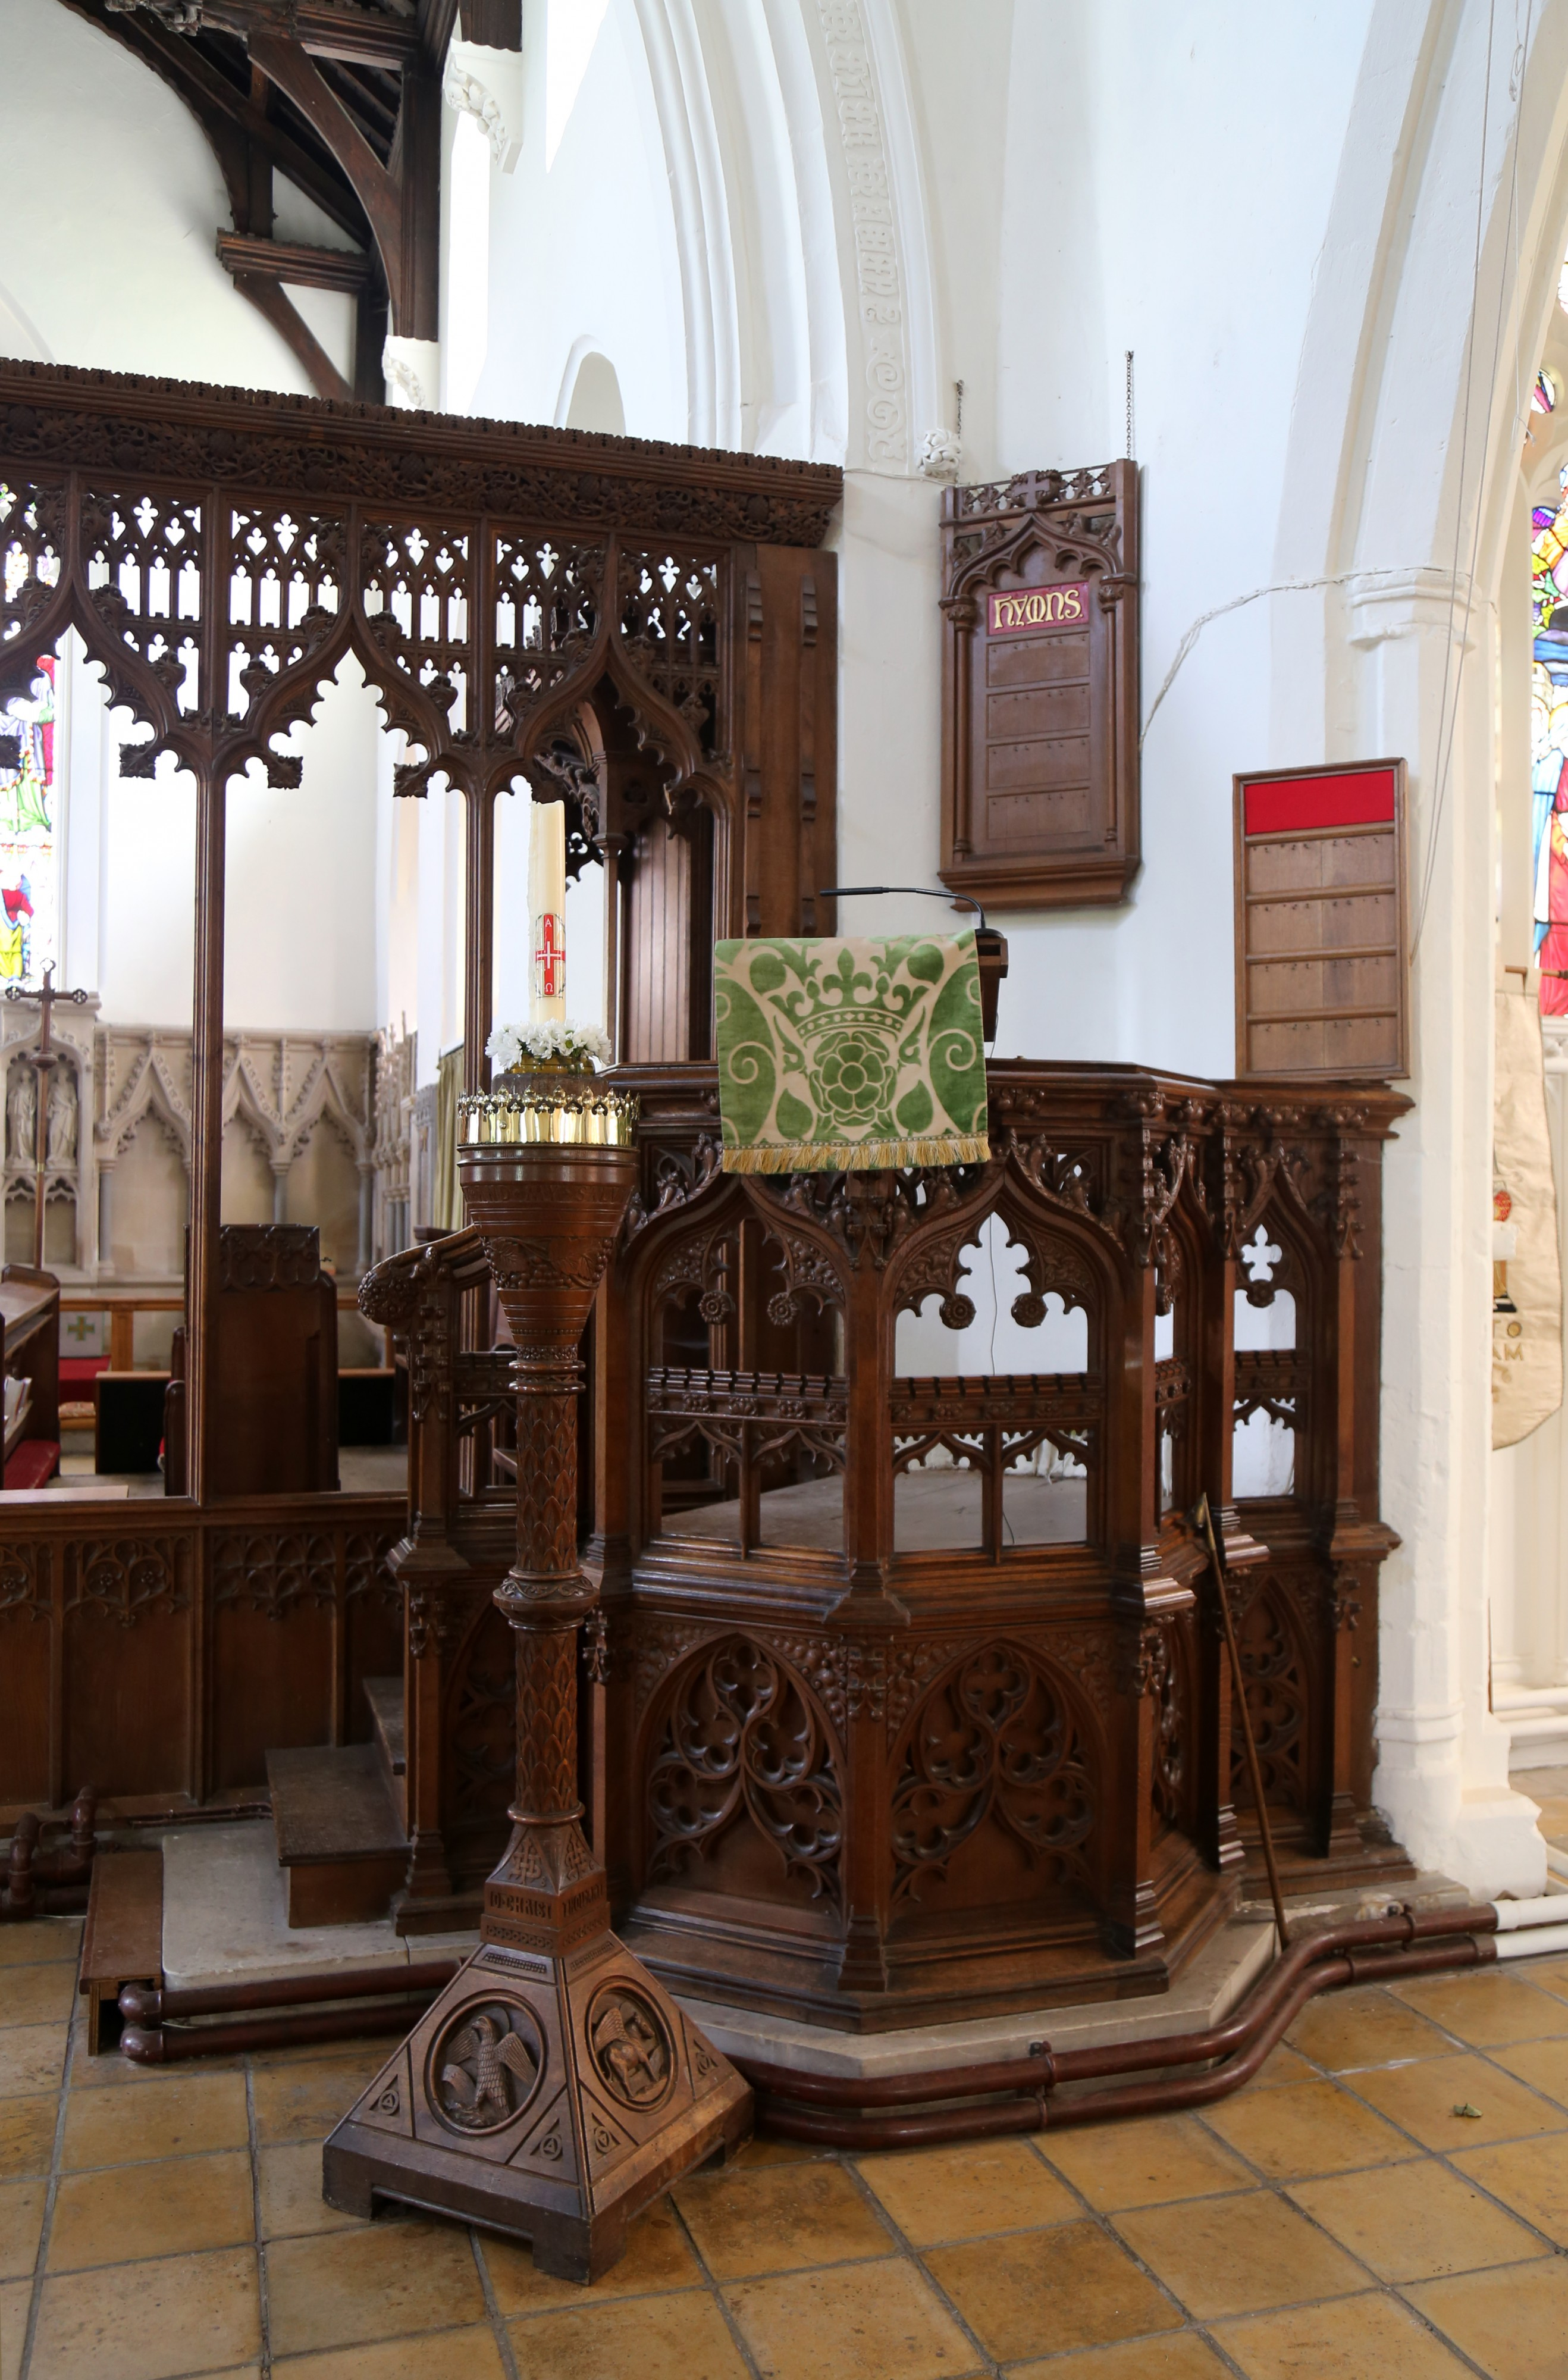 Church of Ss Mary & Lawrence interior - pulpit and bay screen between nave and aisle